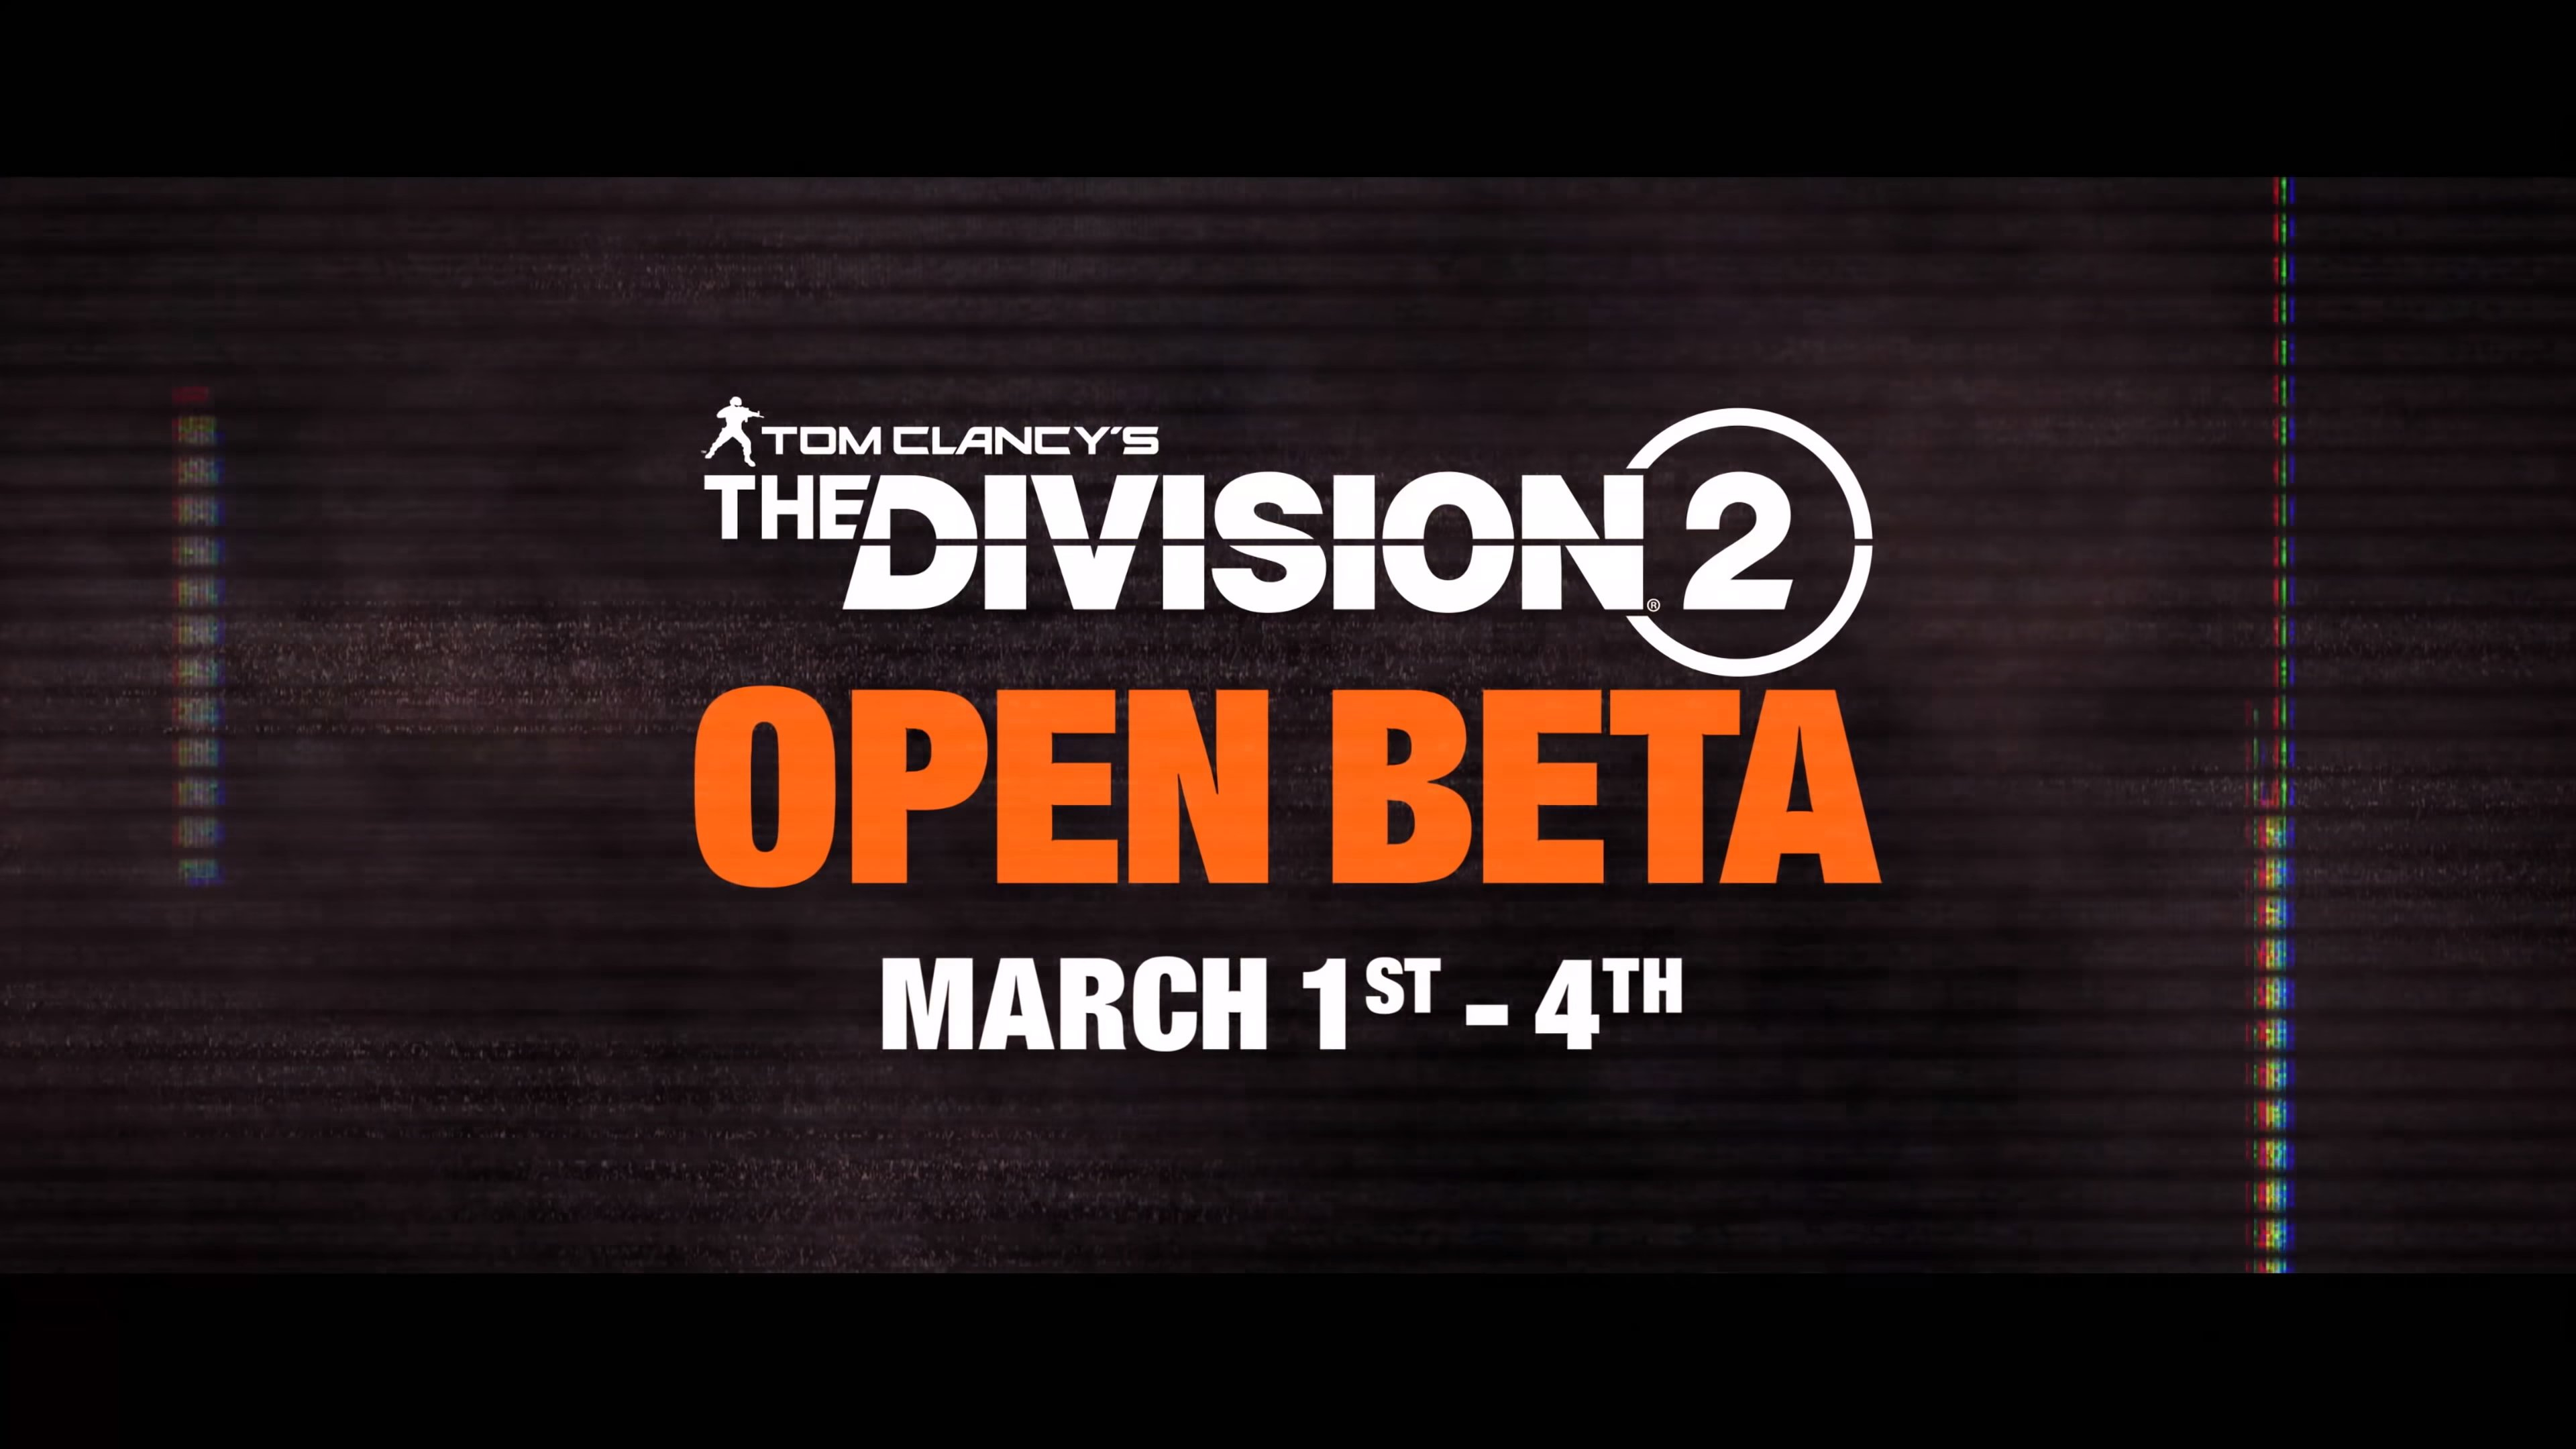 The Division 2 open beta is tomorrow & you can grab the client today! Header Image